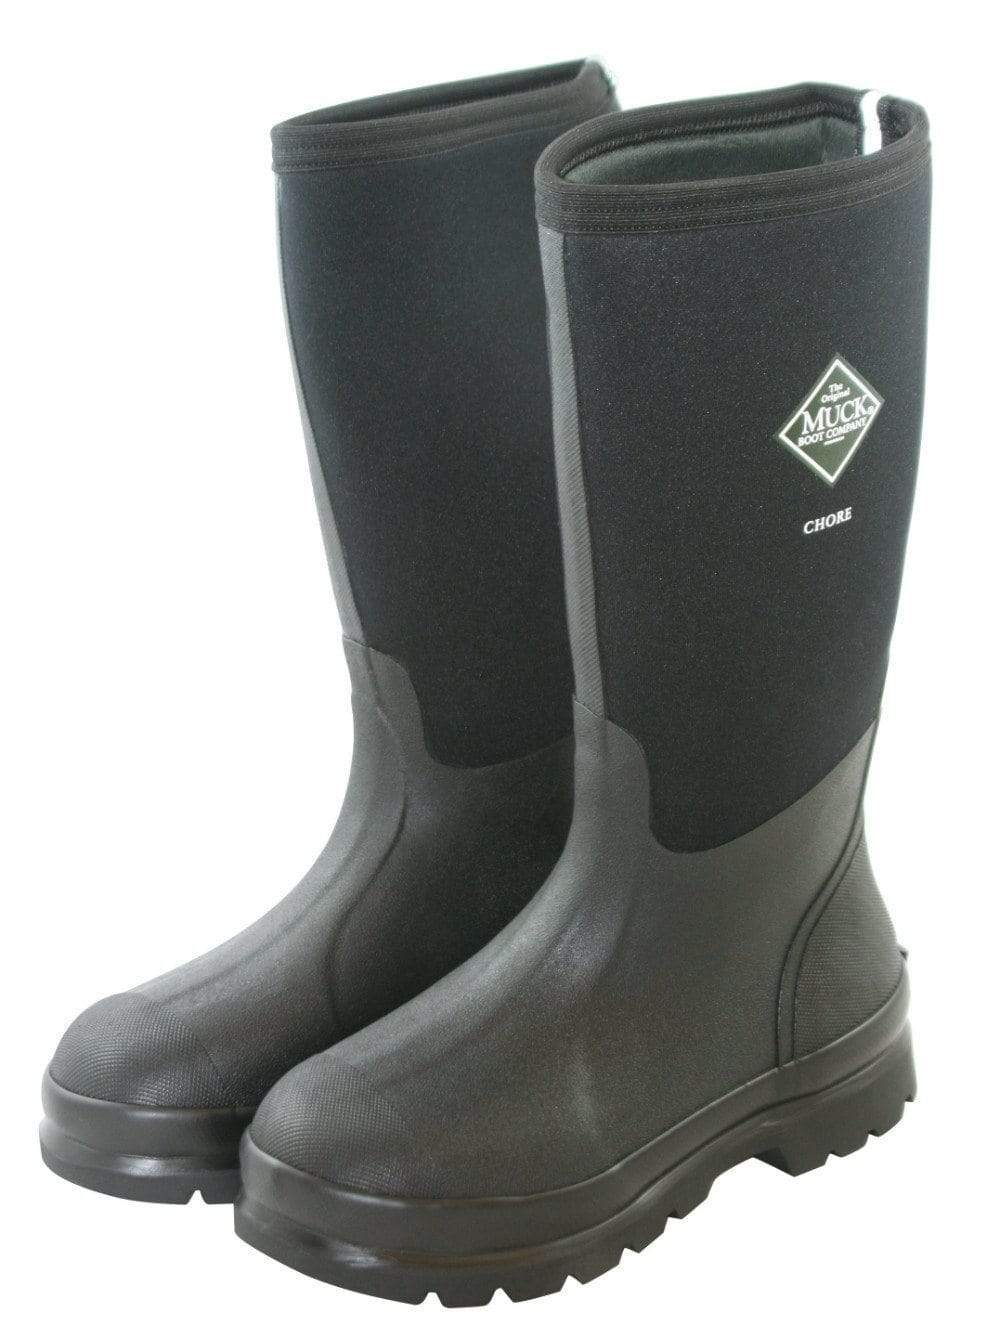 Chore Hi Black - Neoprene by Muck Boots - Wide Calf Wellies for Women